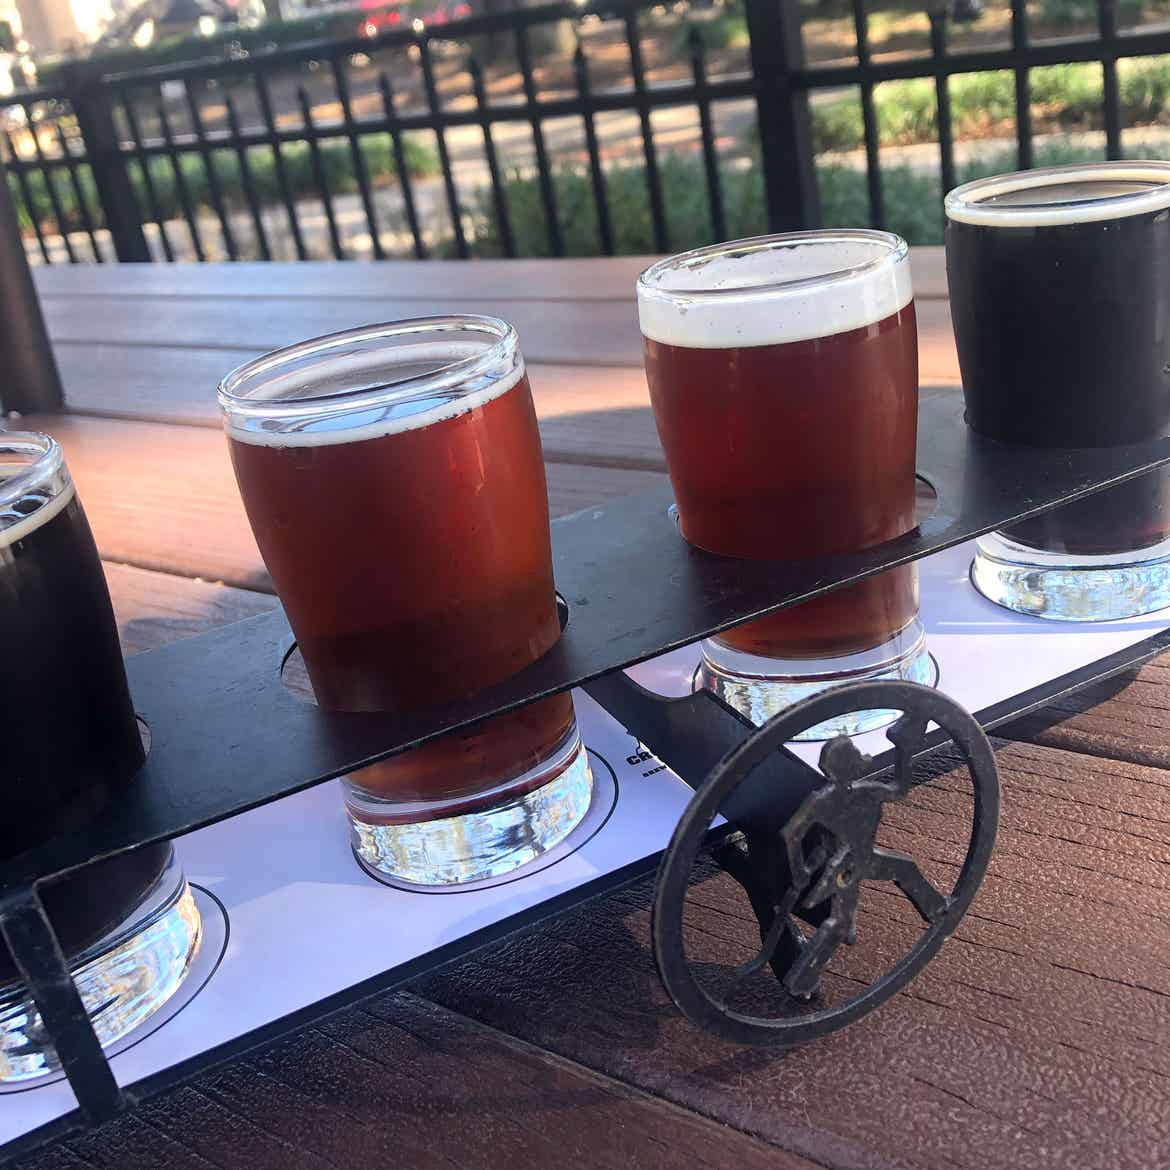 A beer flight with an iron 'Crooked Can' logo stand placed outside on a wooden plank table.